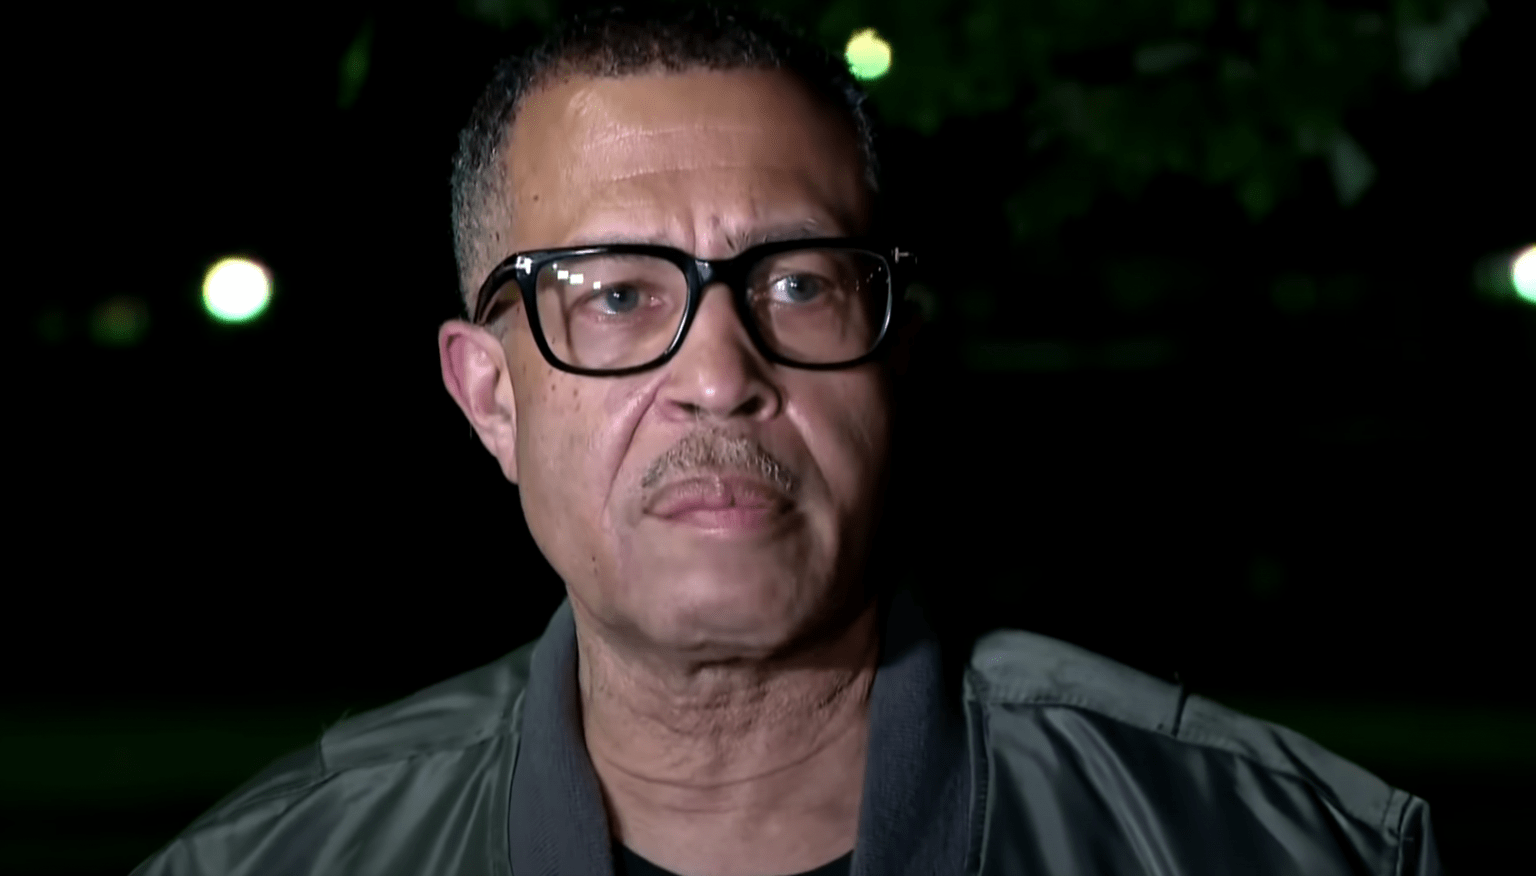 Detroit chief to Black Lives Matter protesters: 'Detroiters are fed up' with you